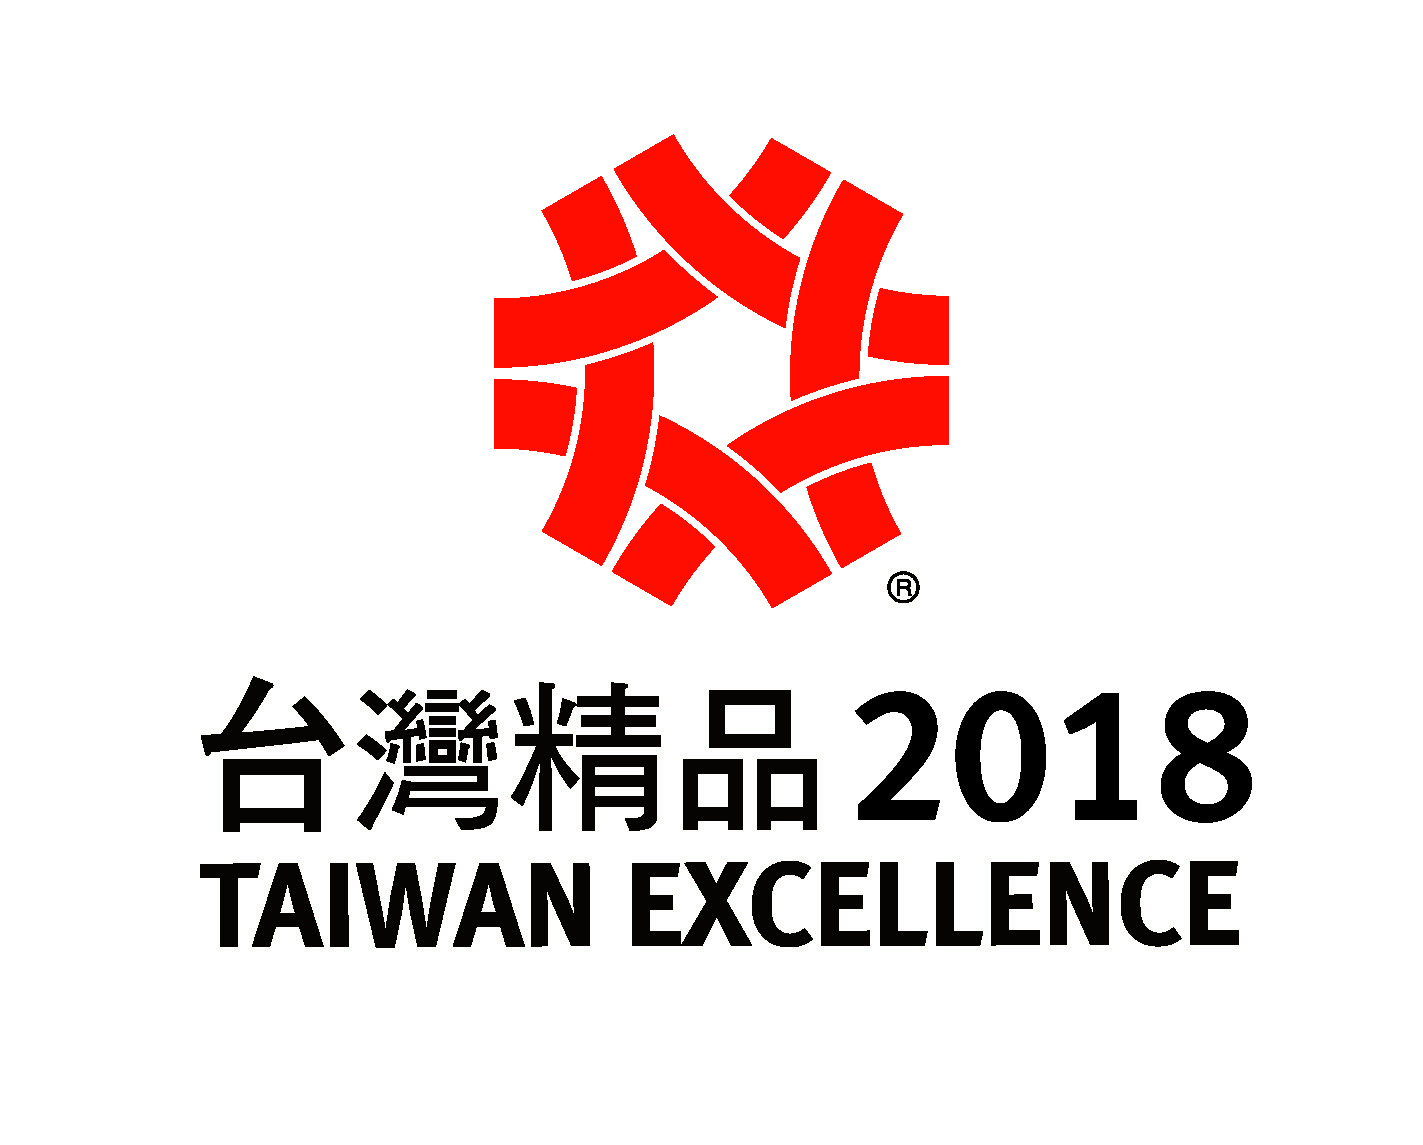 hight resolution of taiwan excellence 2018